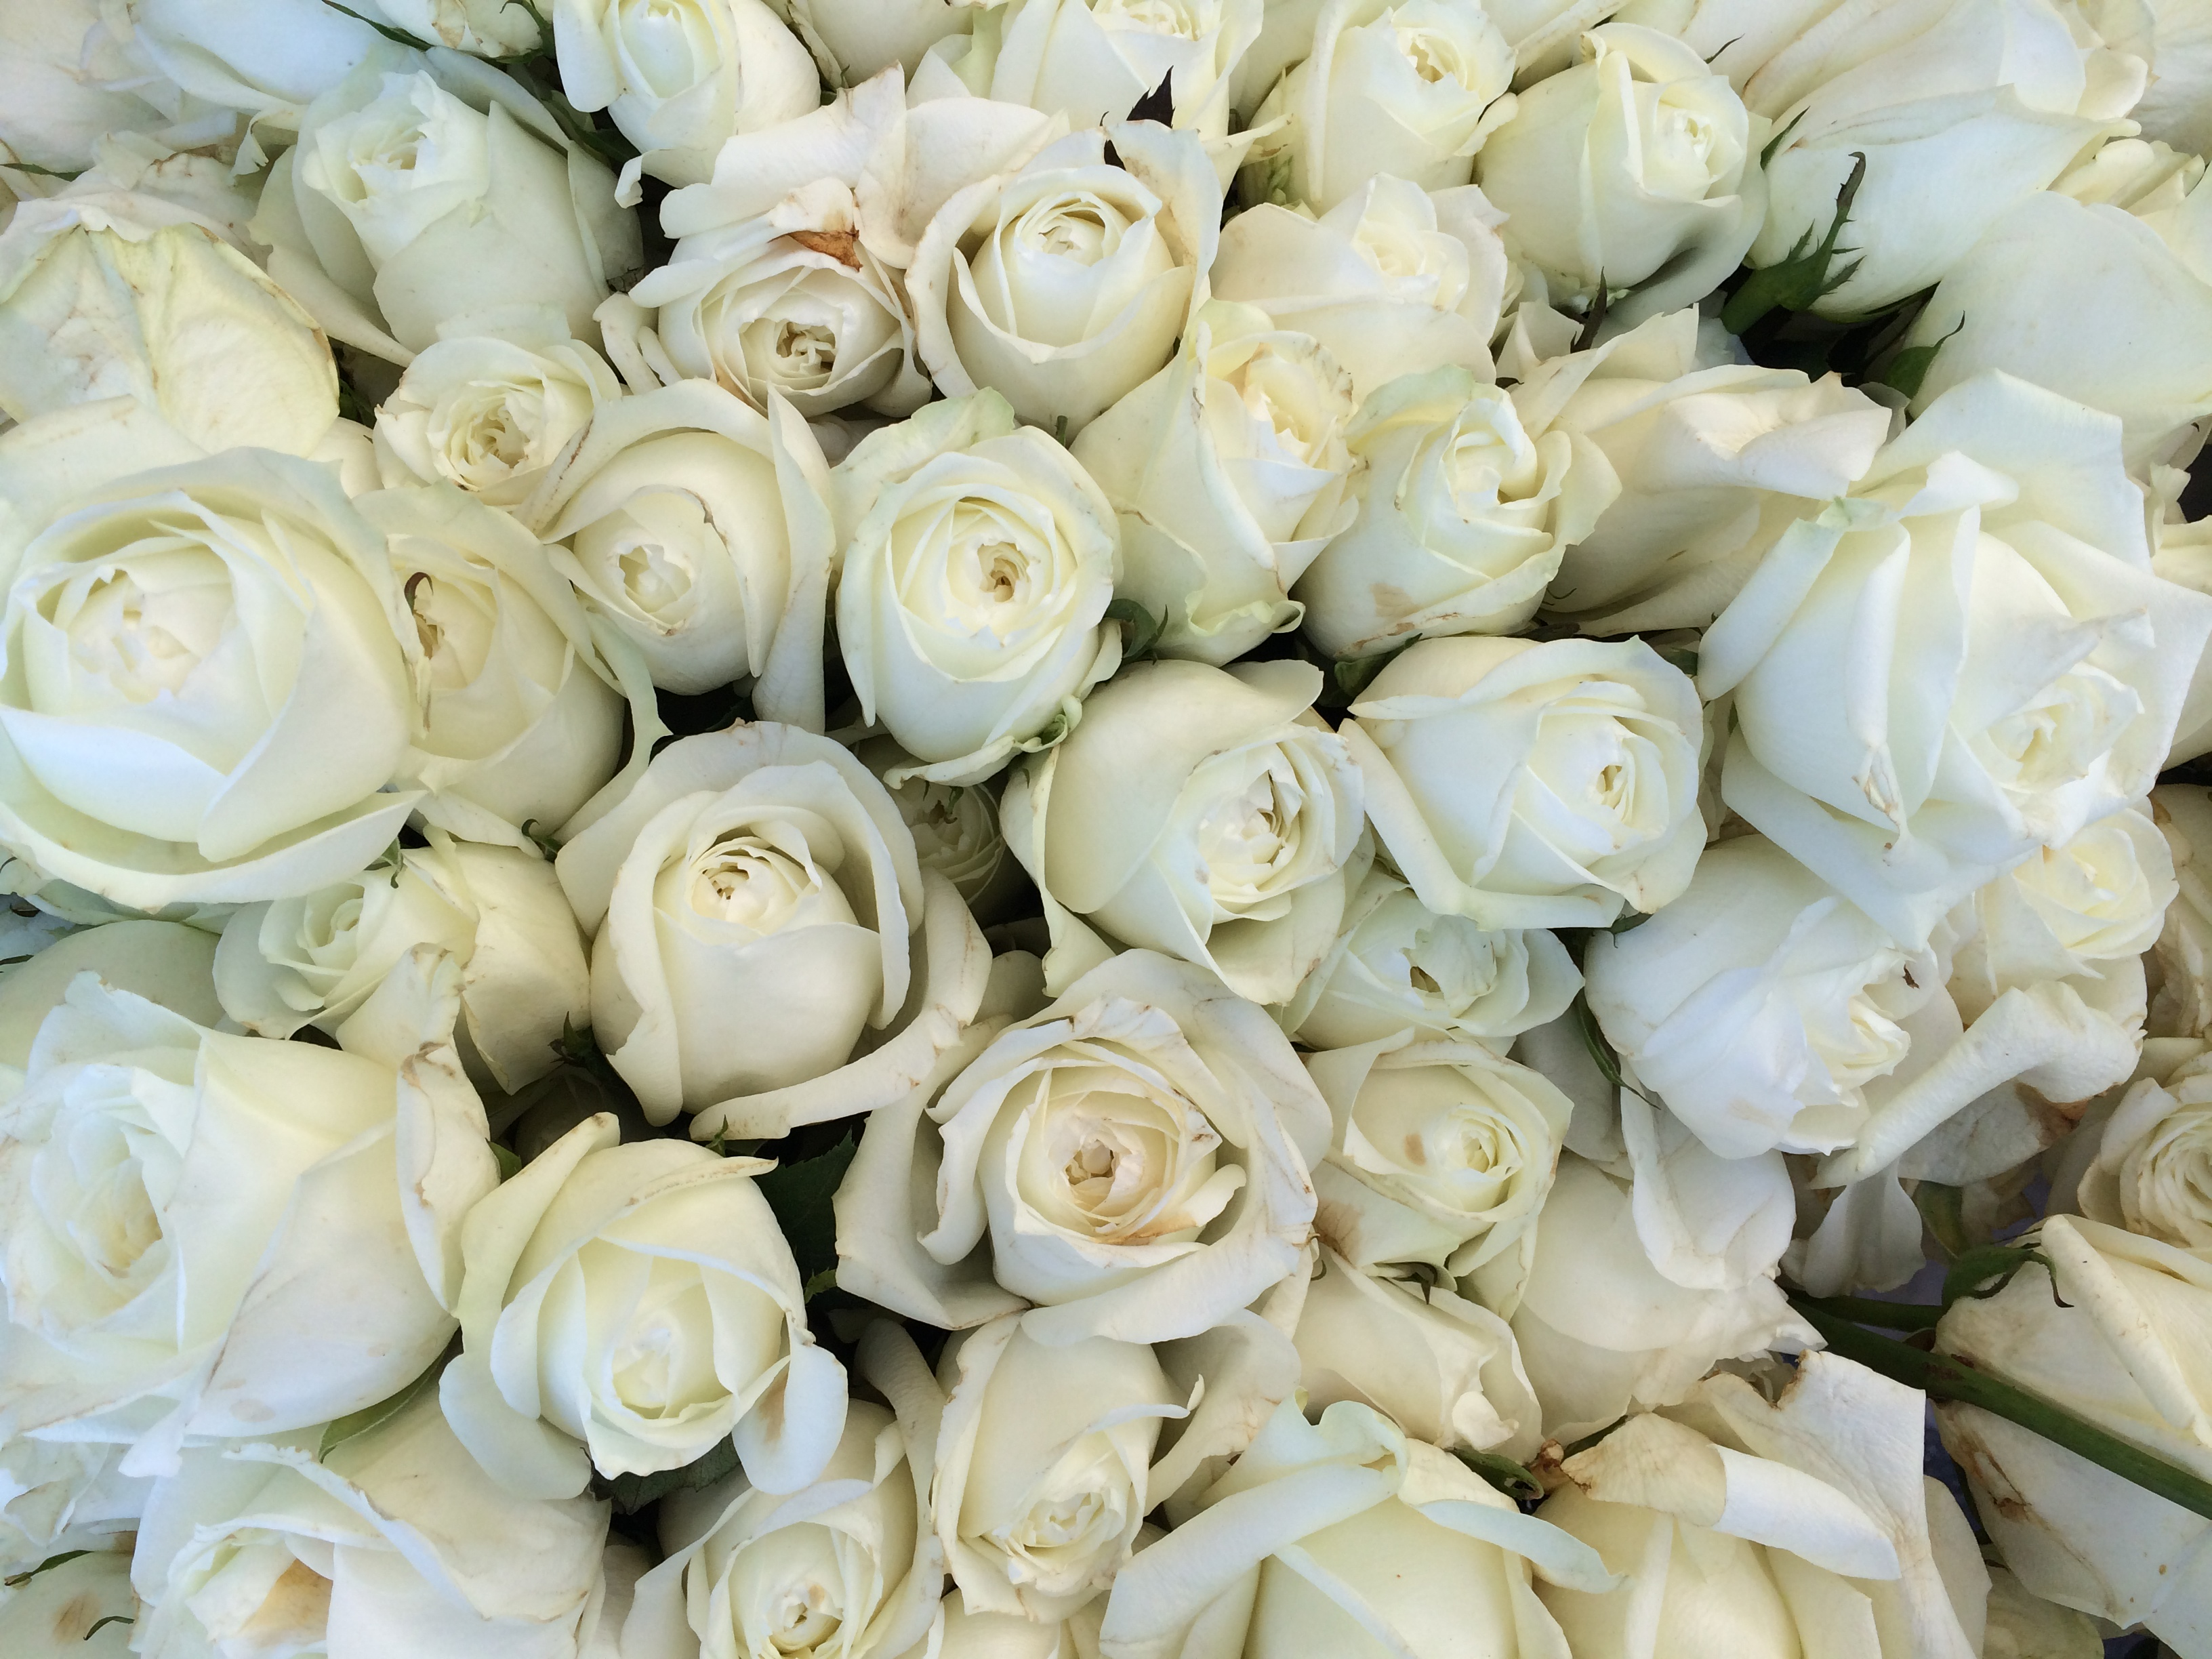 White roses at Santa Monica farmer's market